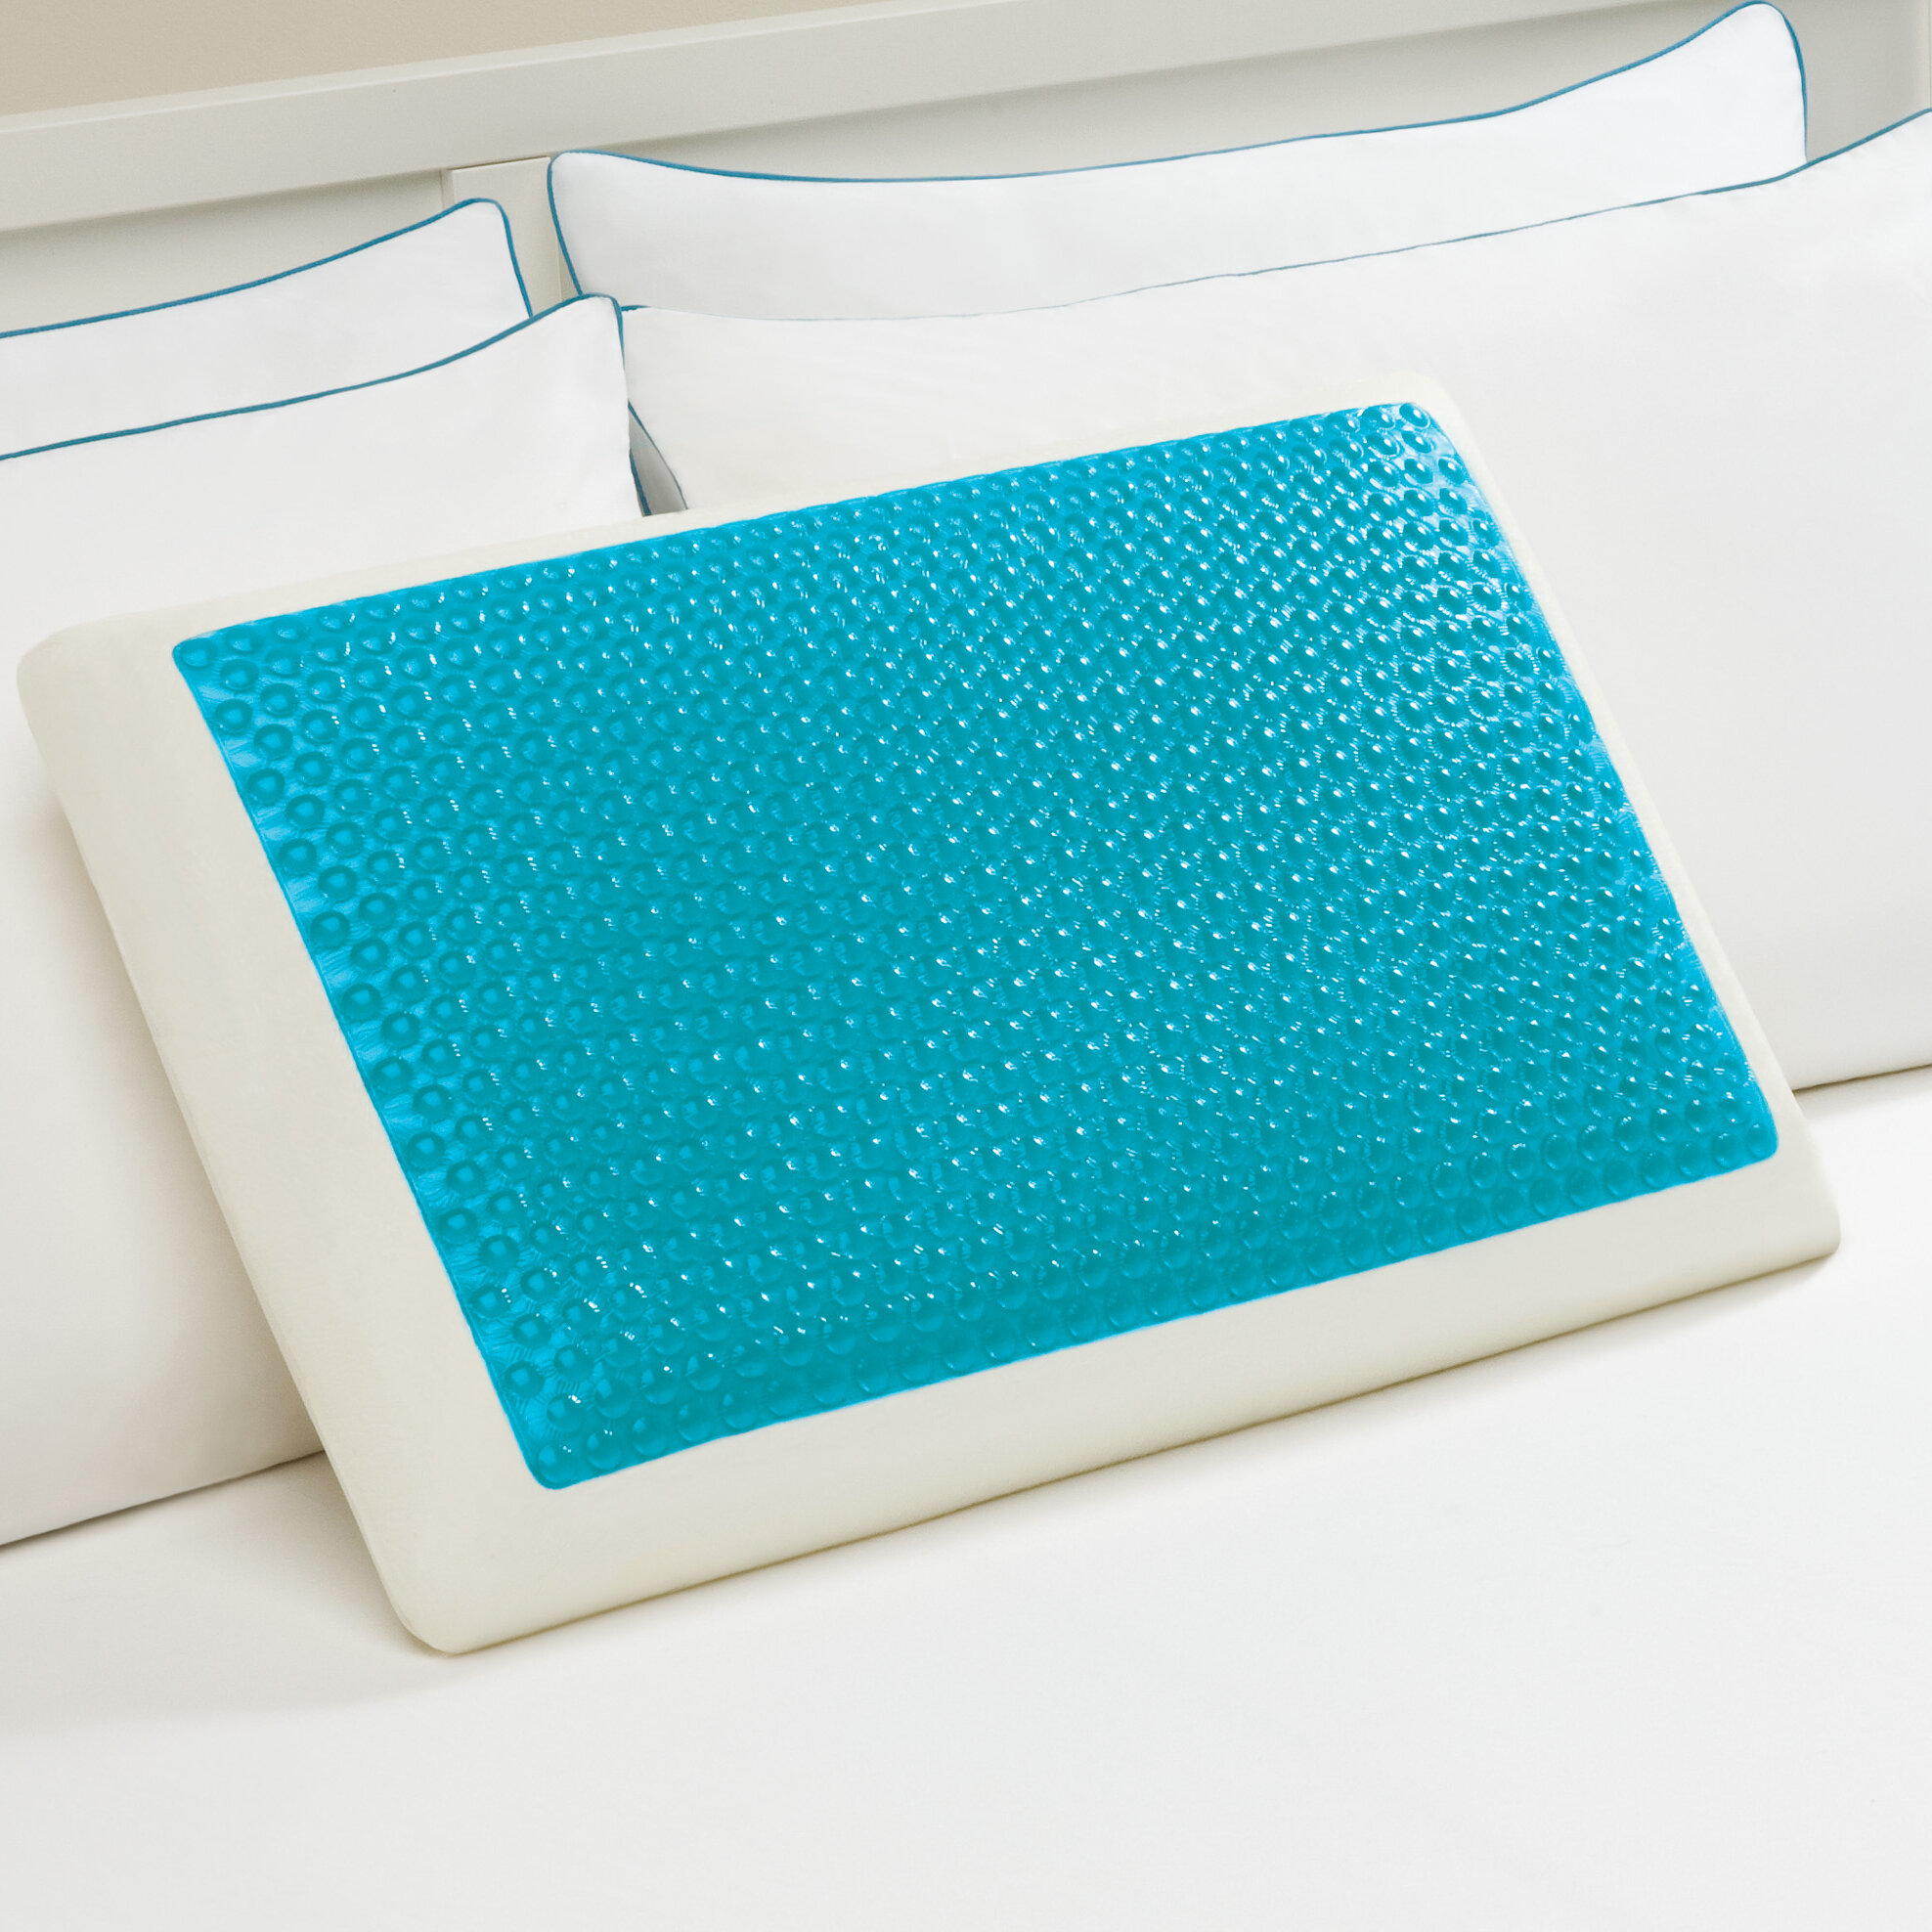 time s cooling the of work world most ghostpillow real new that advanced pillow pillows